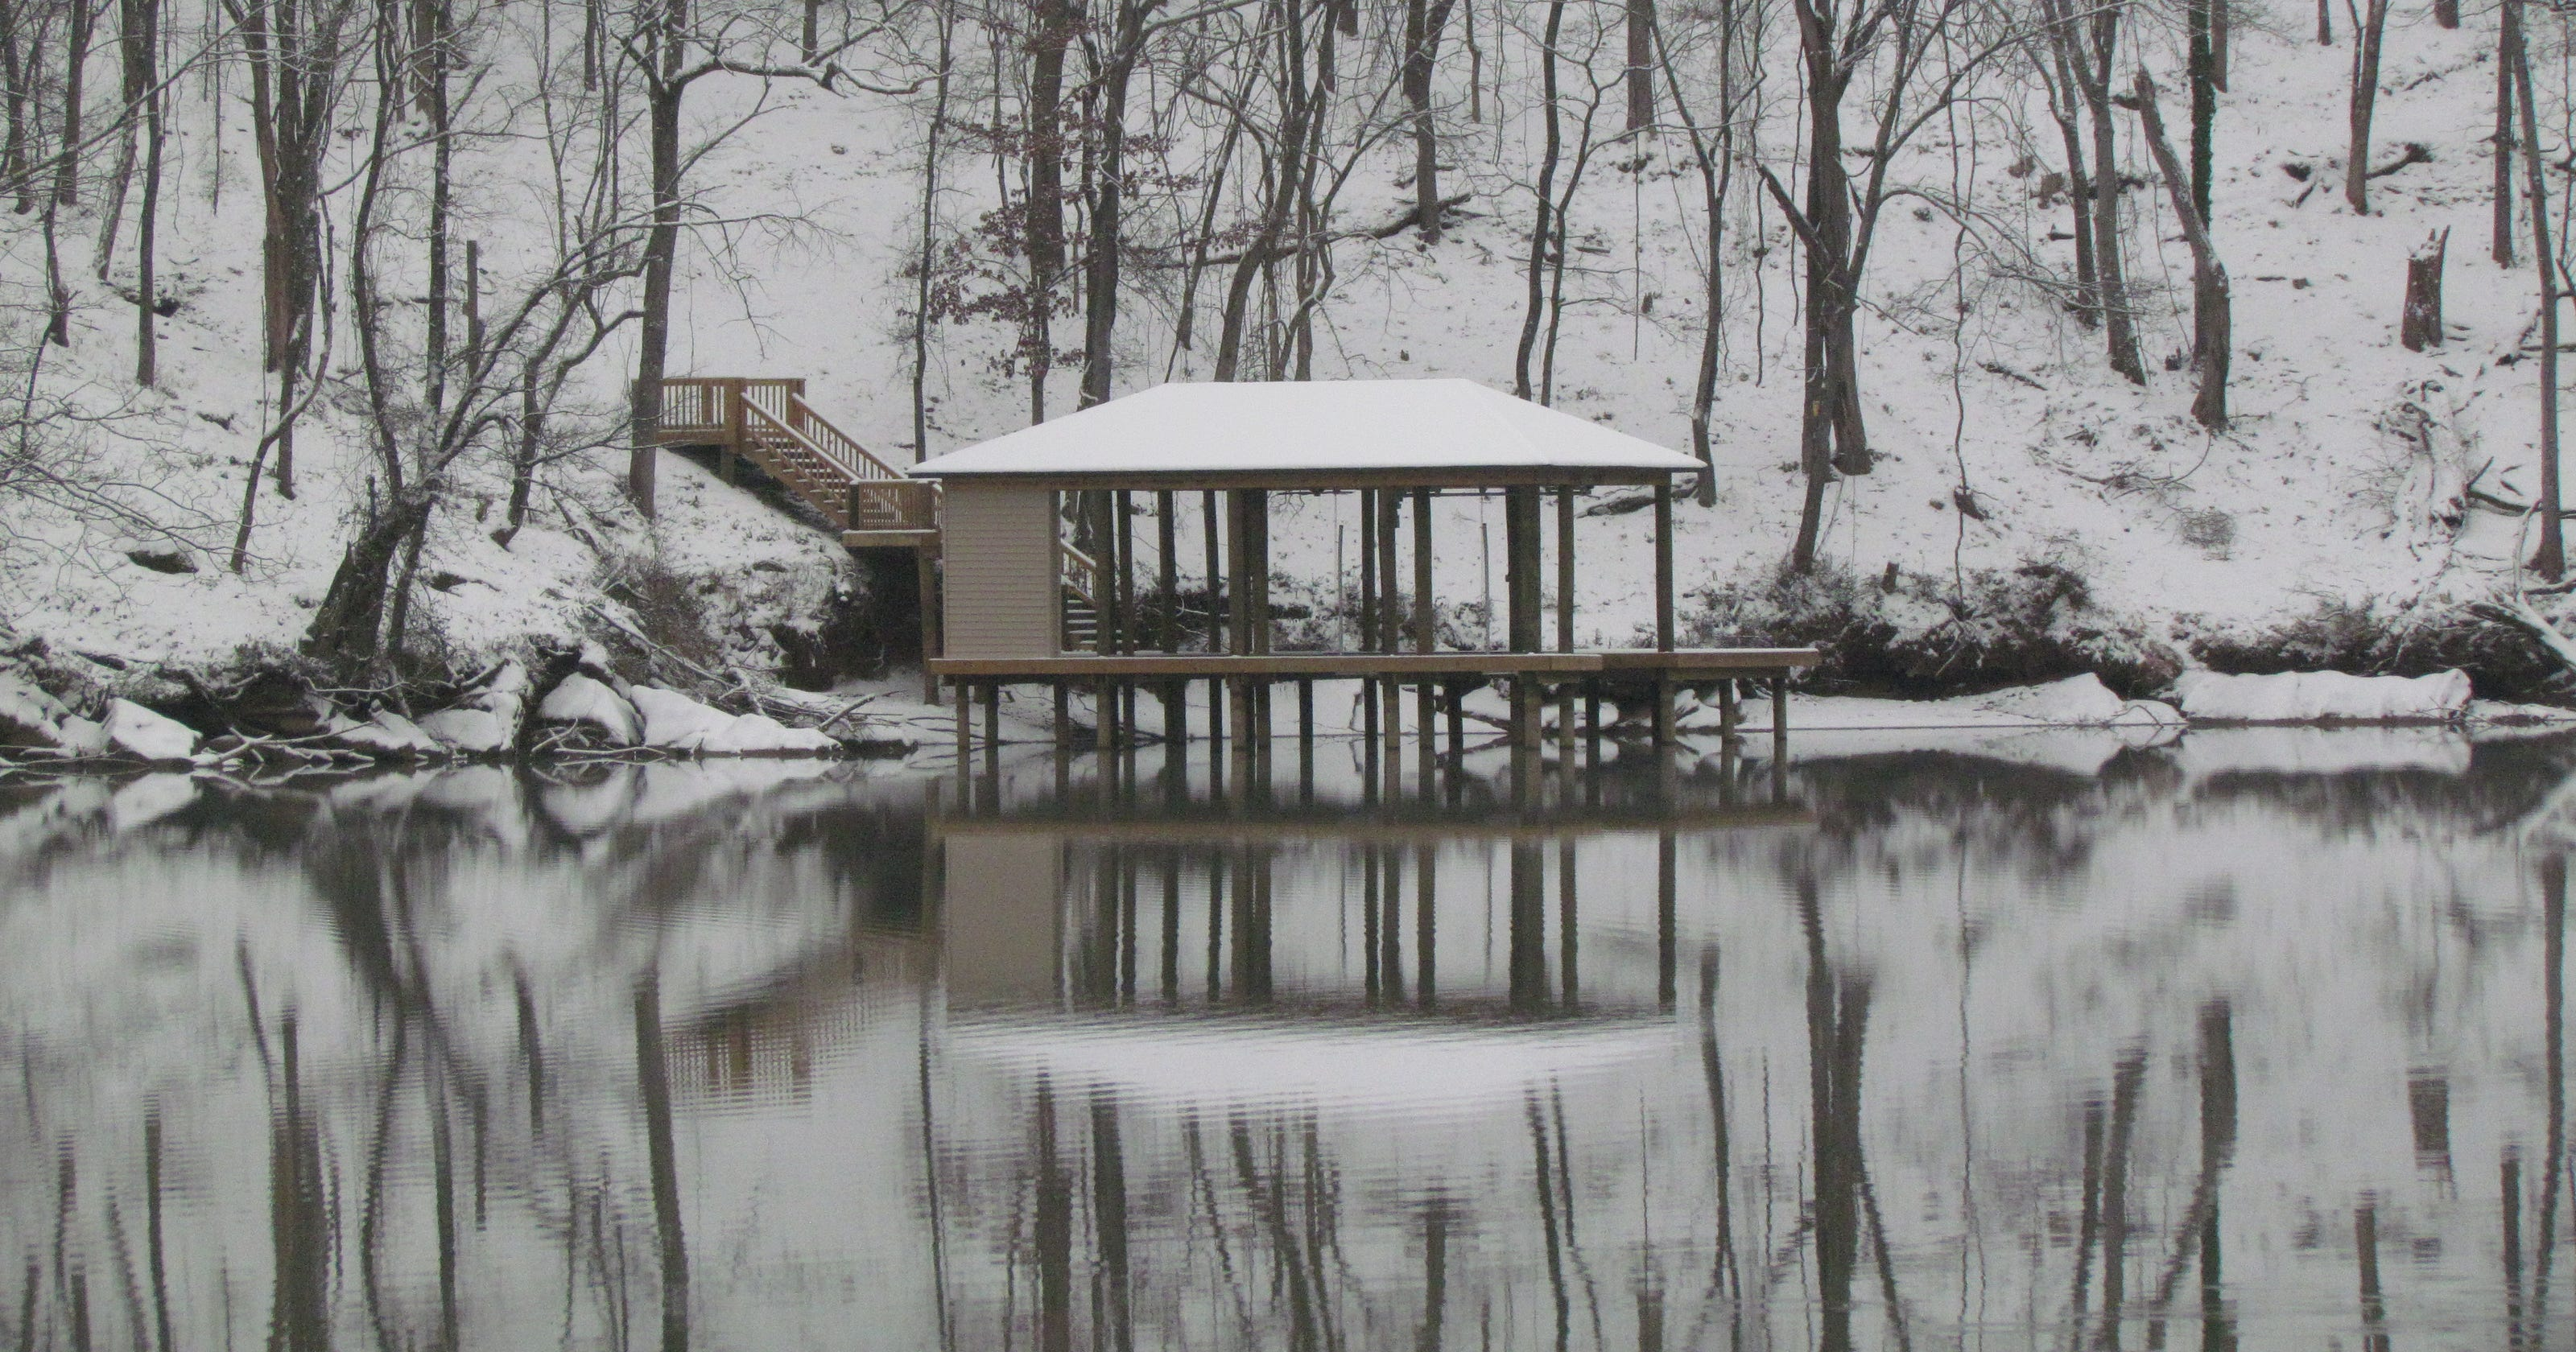 Harsh winter in store for Tennessee, says unreliable